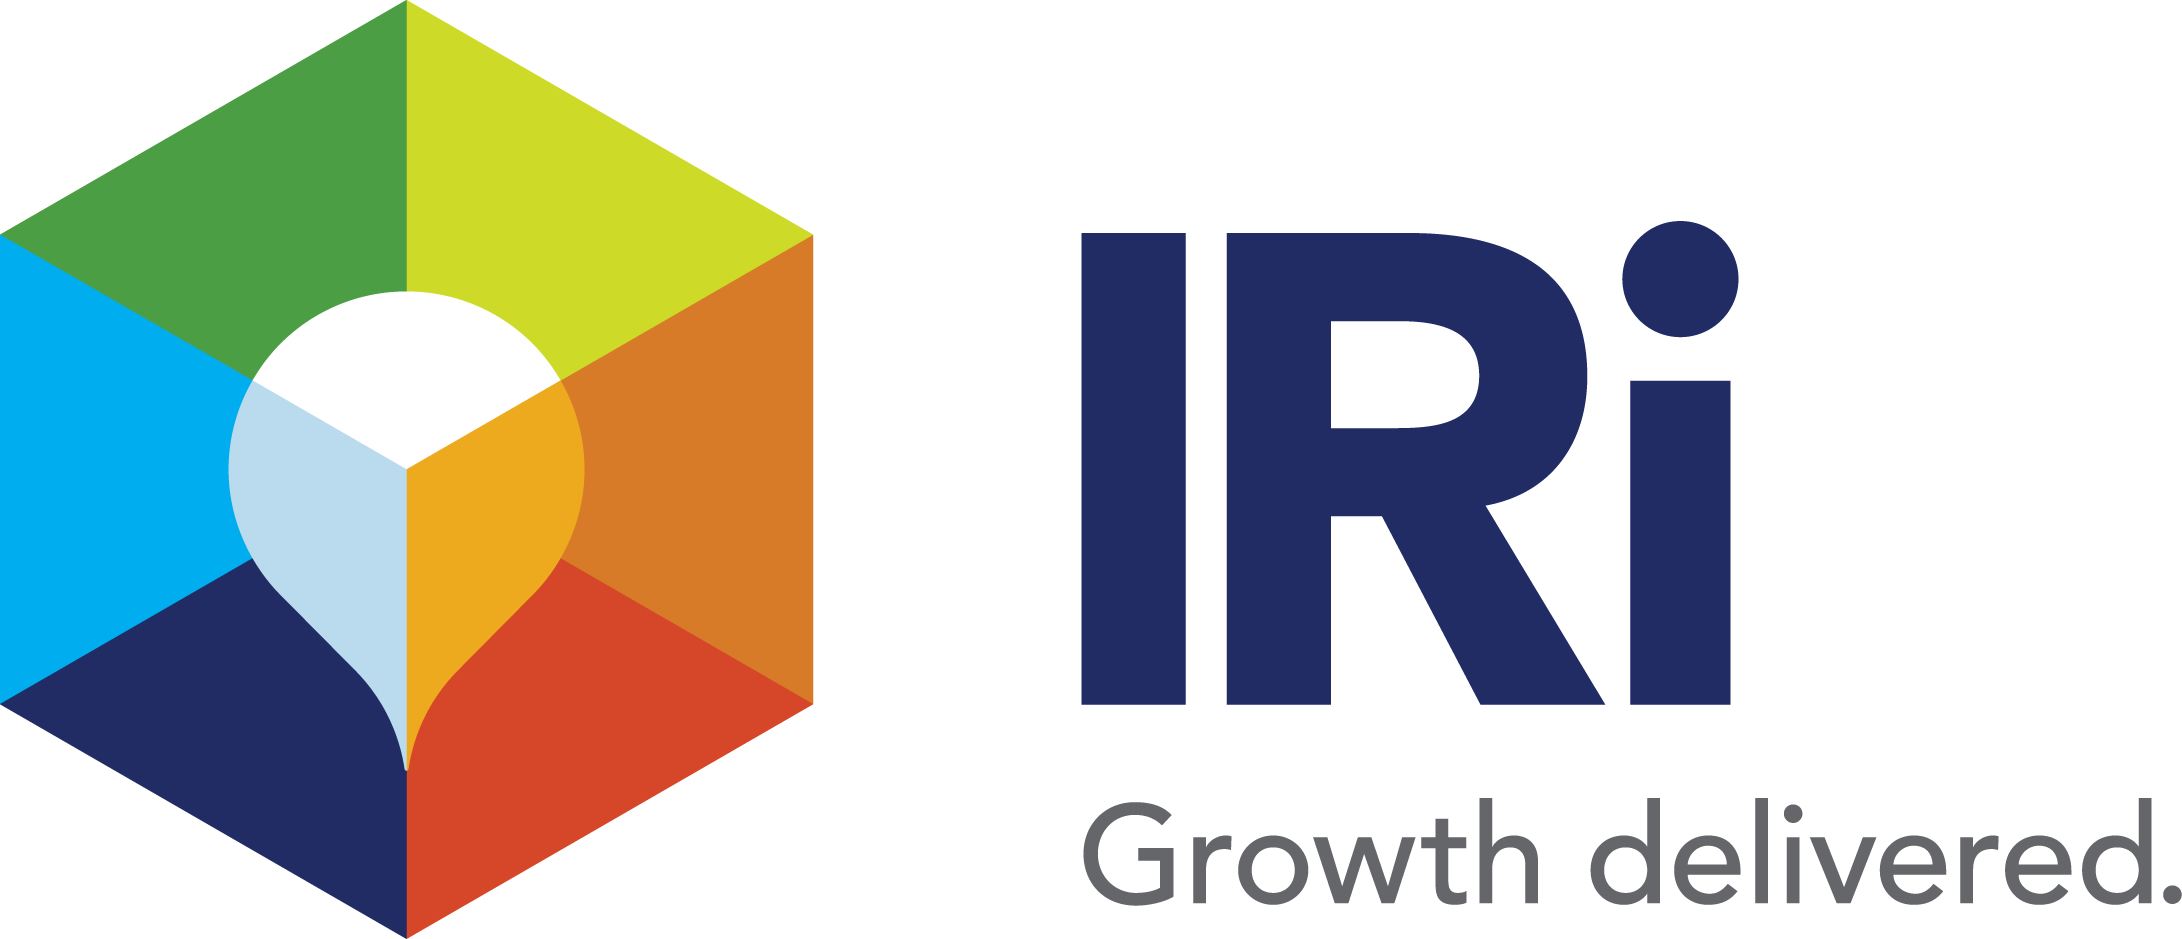 Iri S Krishnakumar Kk Davey And The Boston Consulting Group Dan Wald To Reveal Results Of New Consumer Packaged Goods Growth Leaders Study At 2014 Summit Session Business Wire